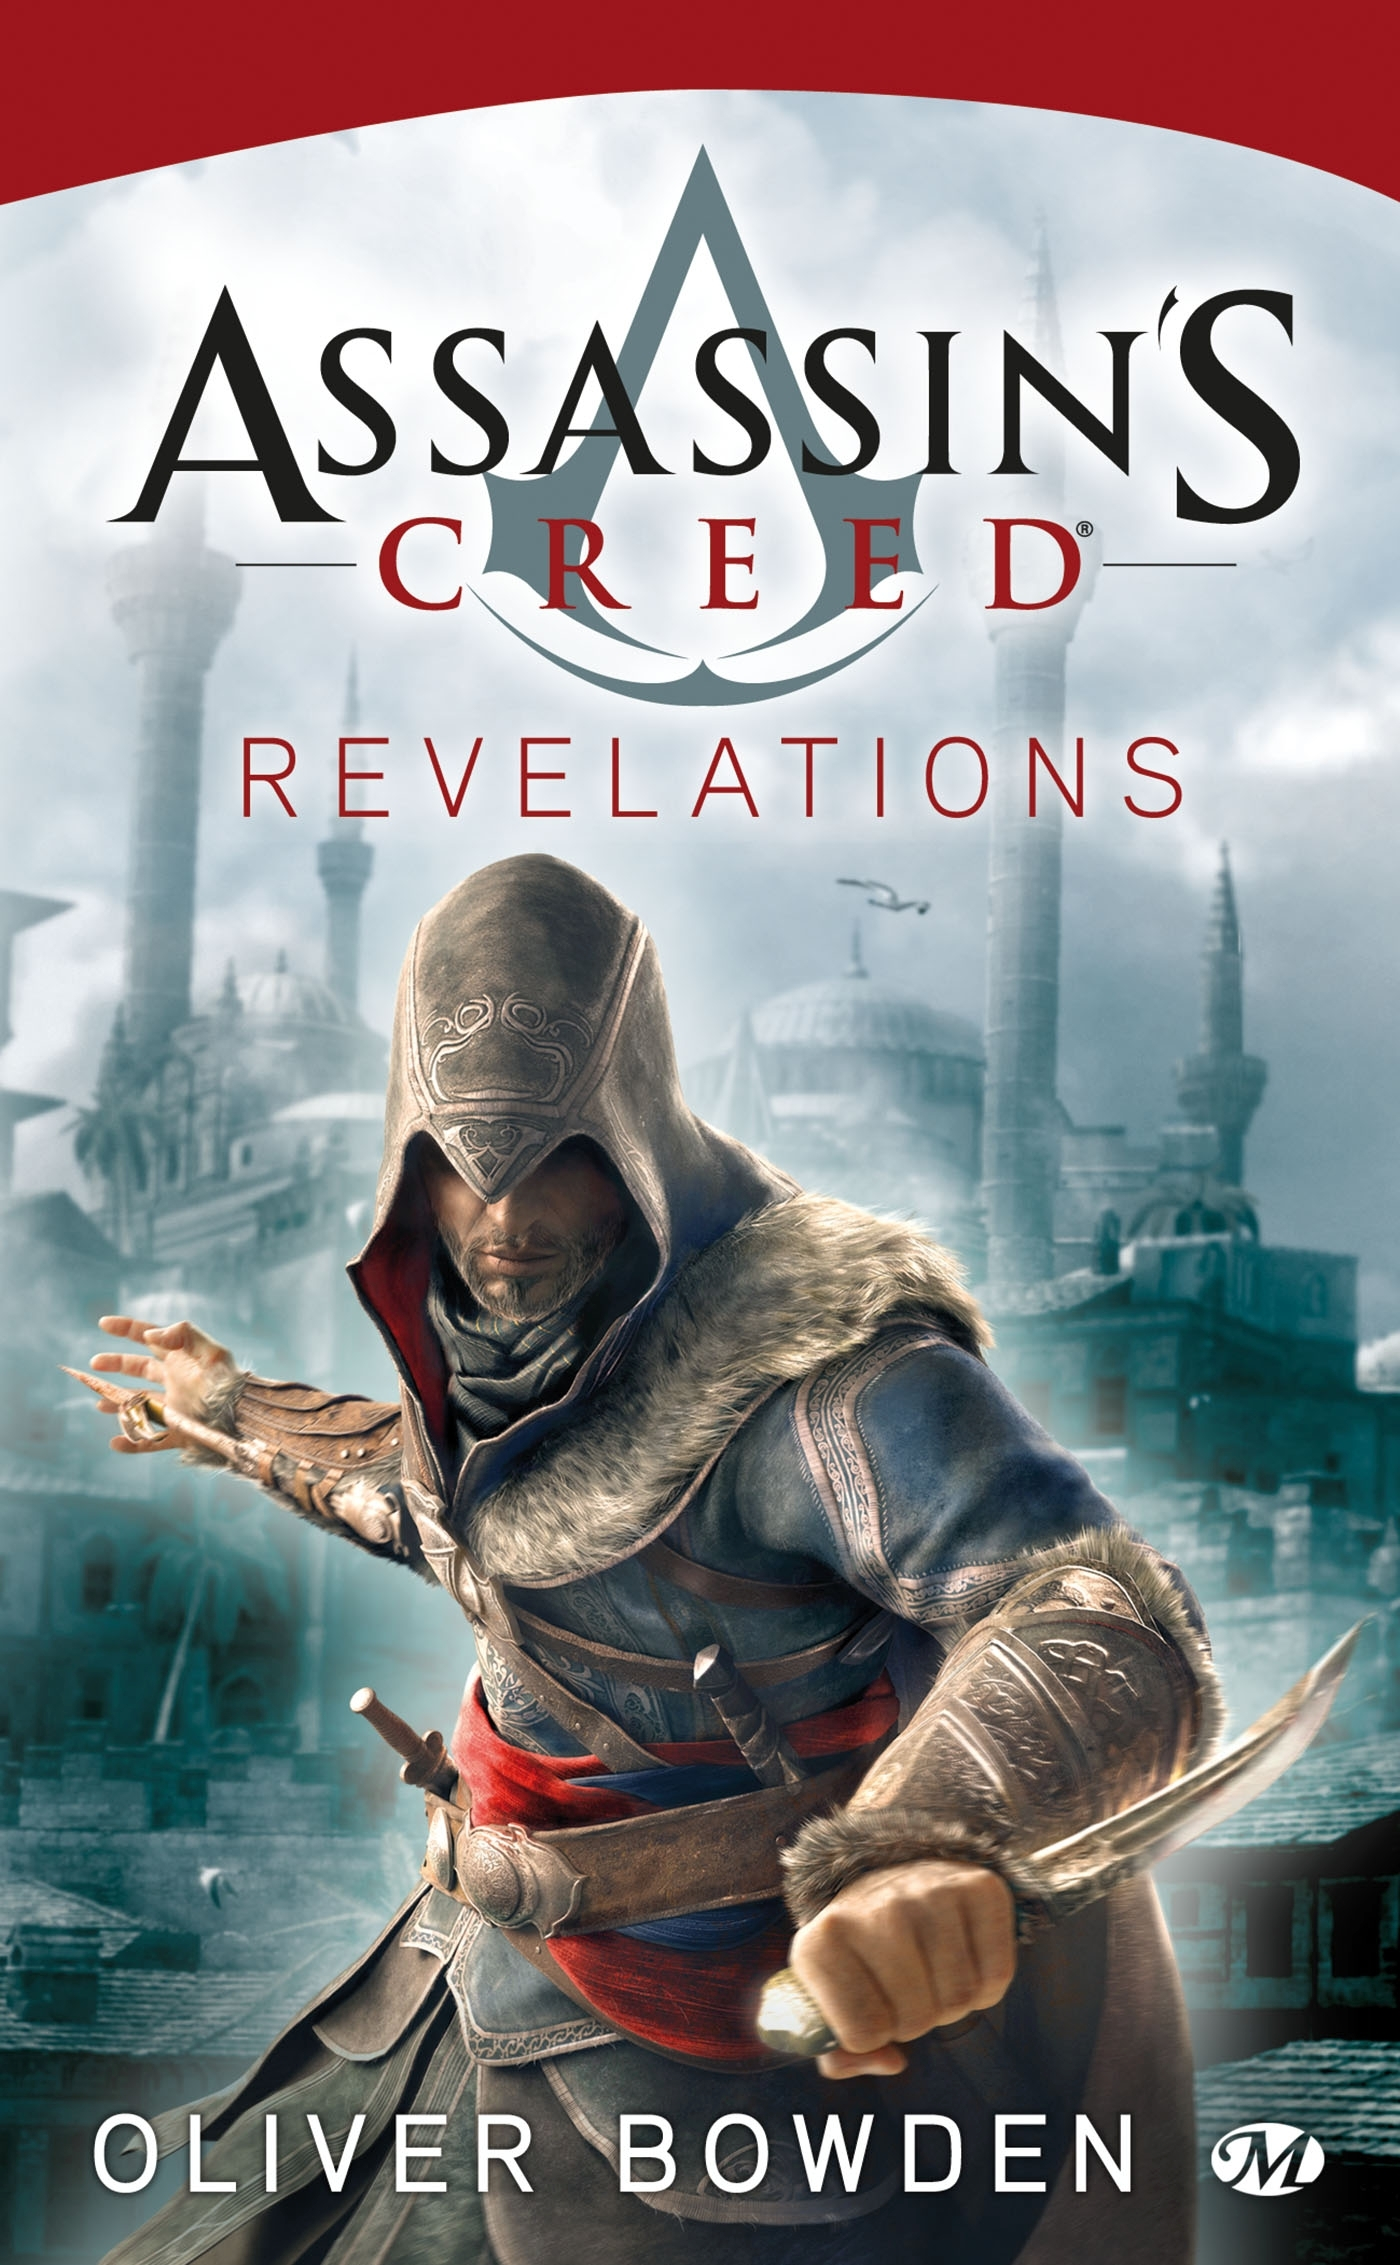 ASSASSIN'S CREED, T4 : ASSASSIN'S CREED : REVELATIONS